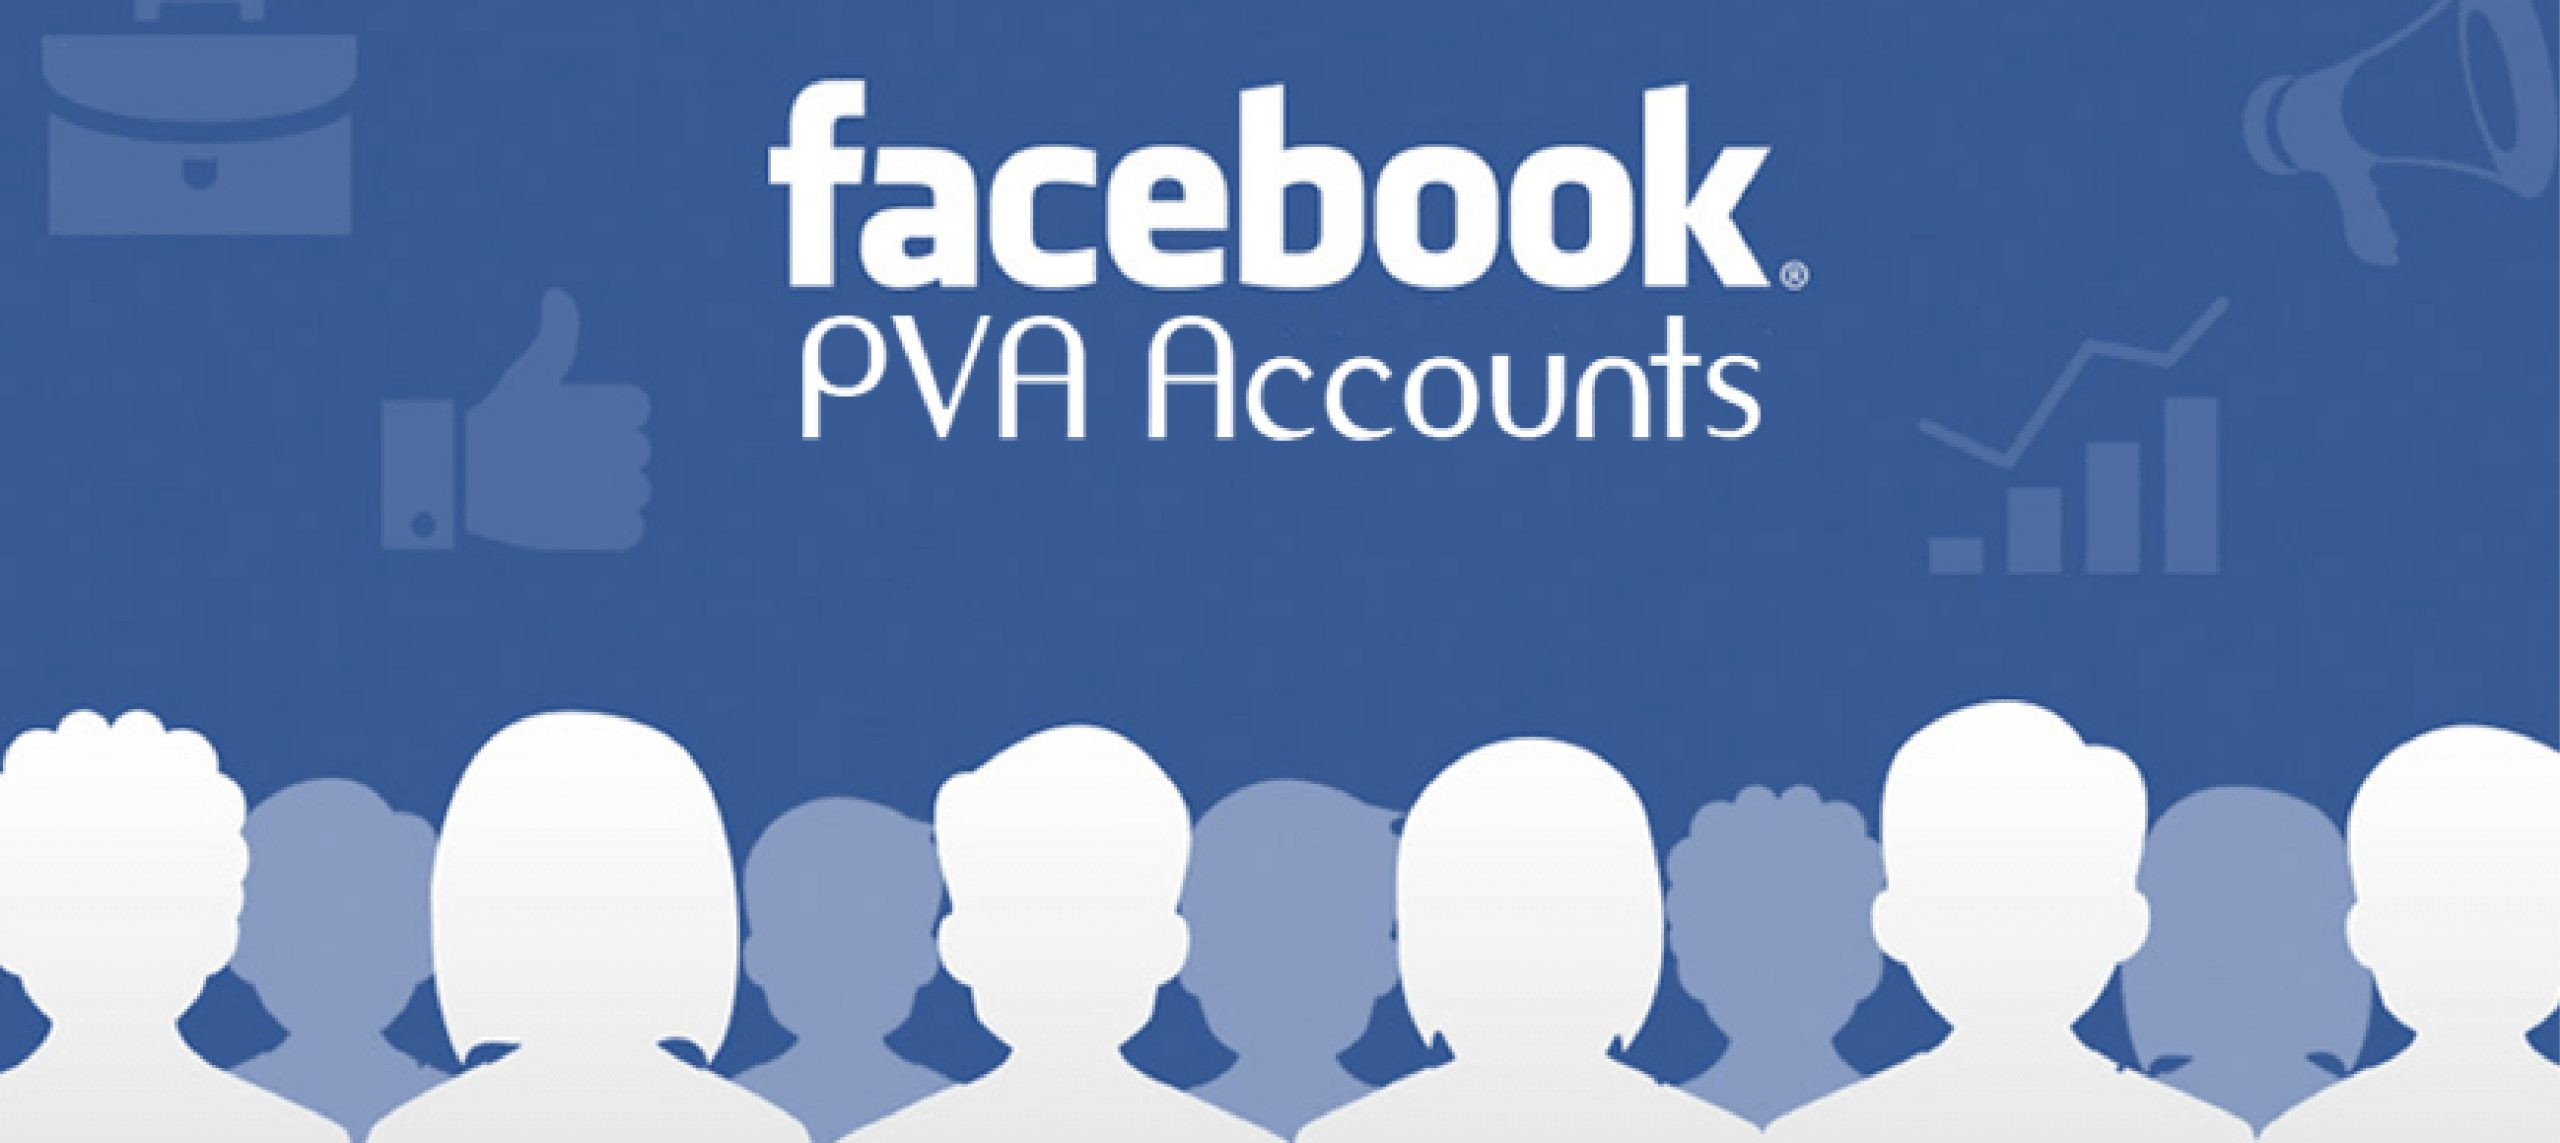 Buy Facebook Accounts - Digital goods and Services